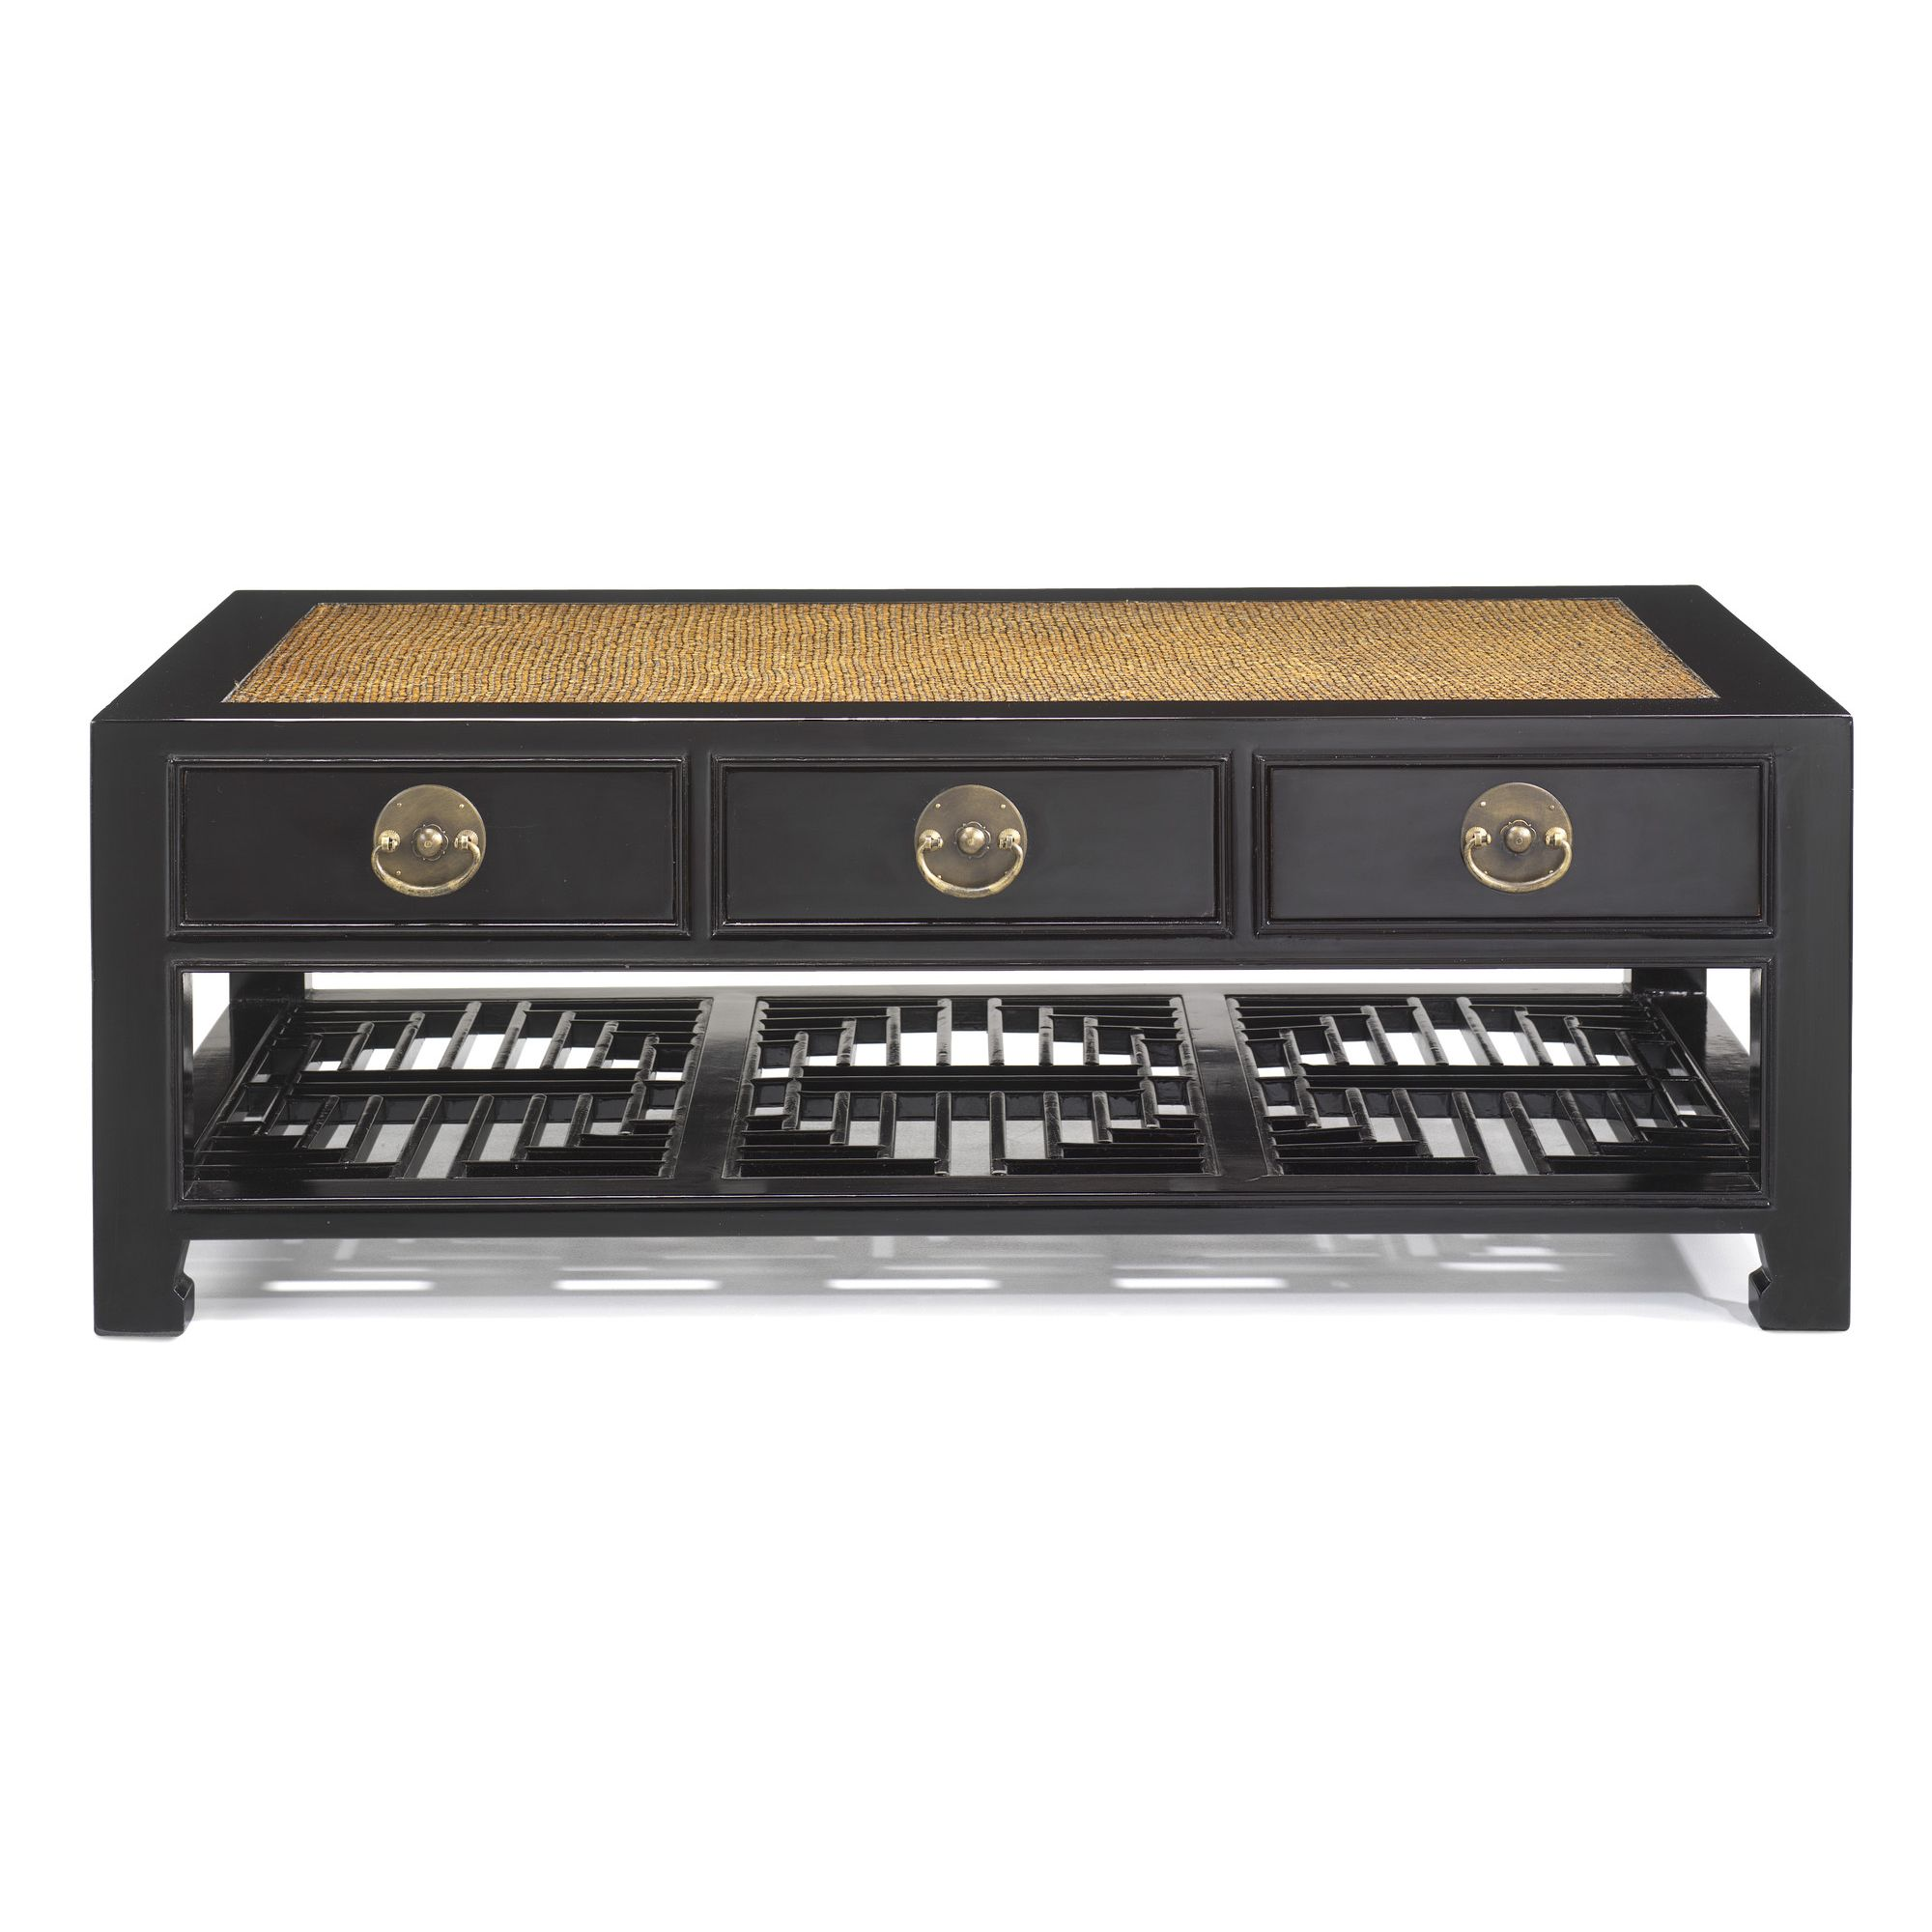 Shimu Chinese Classical Carved Coffee Table - Black Lacquer at Tesco Direct